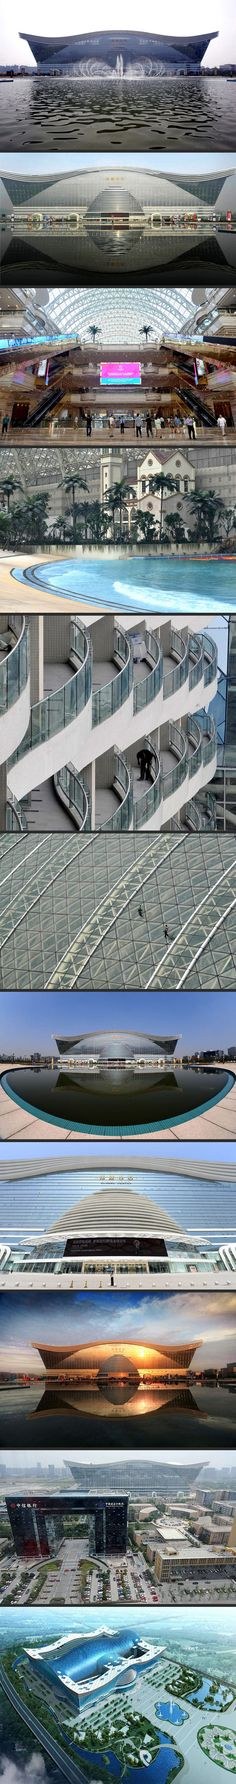 Largest Building in the World has been completed in China